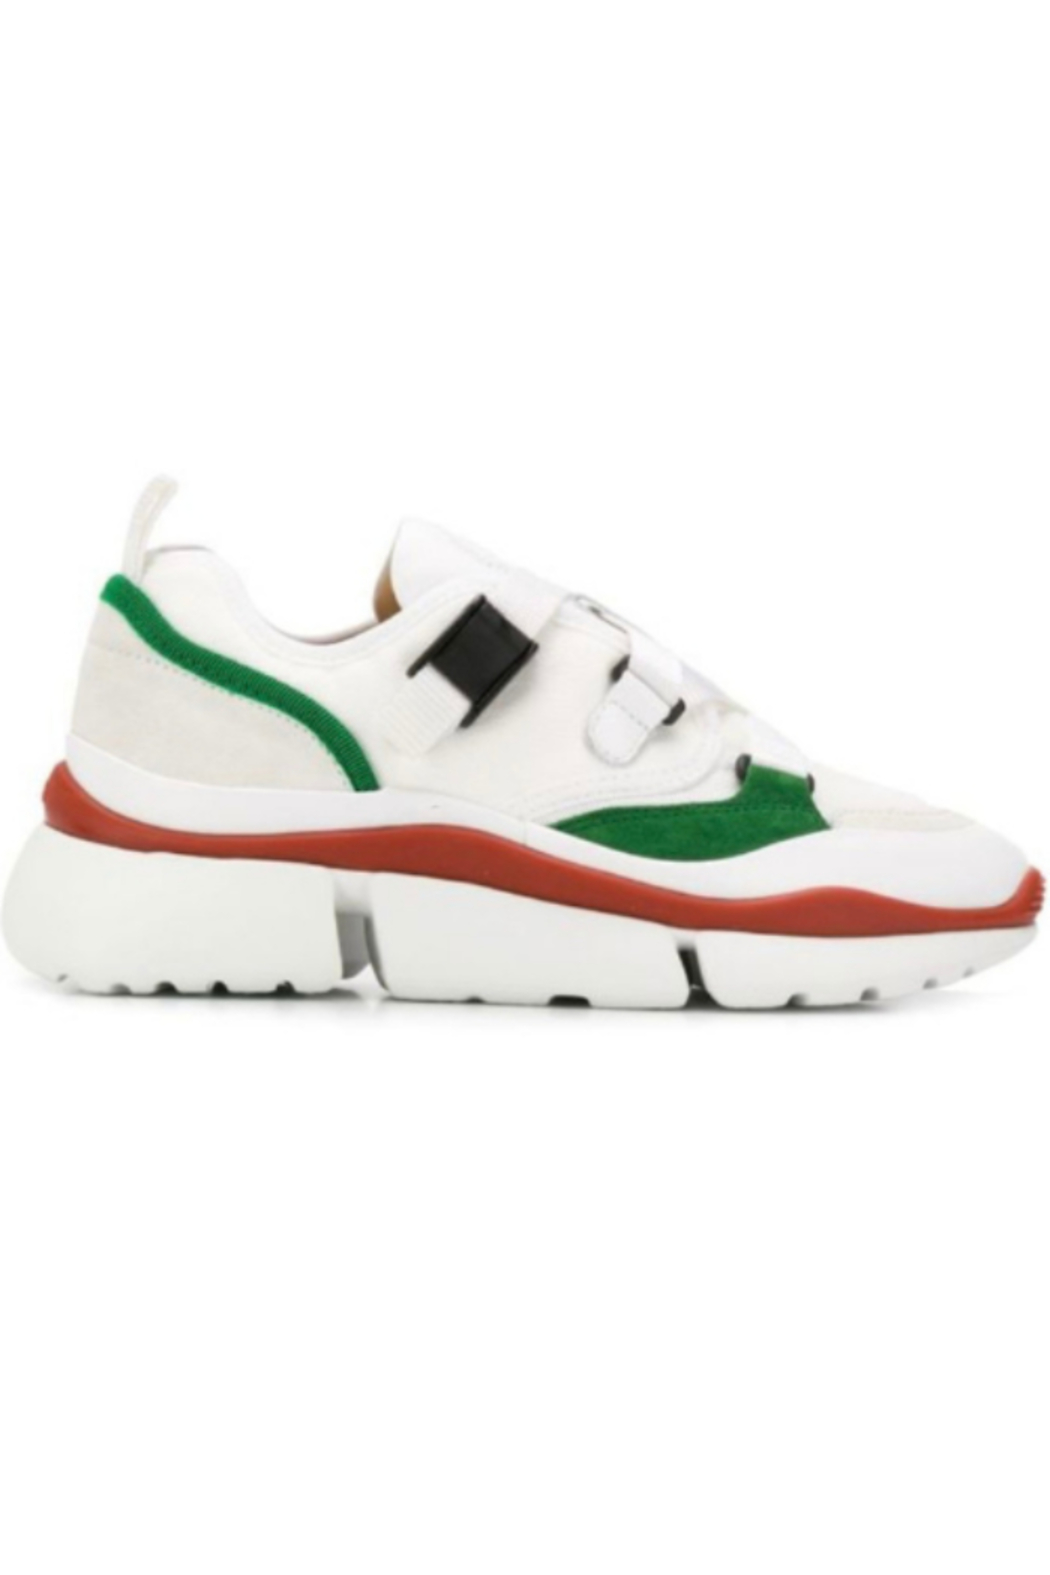 Chloe SONNIE SNEAKER - Front Cropped Image